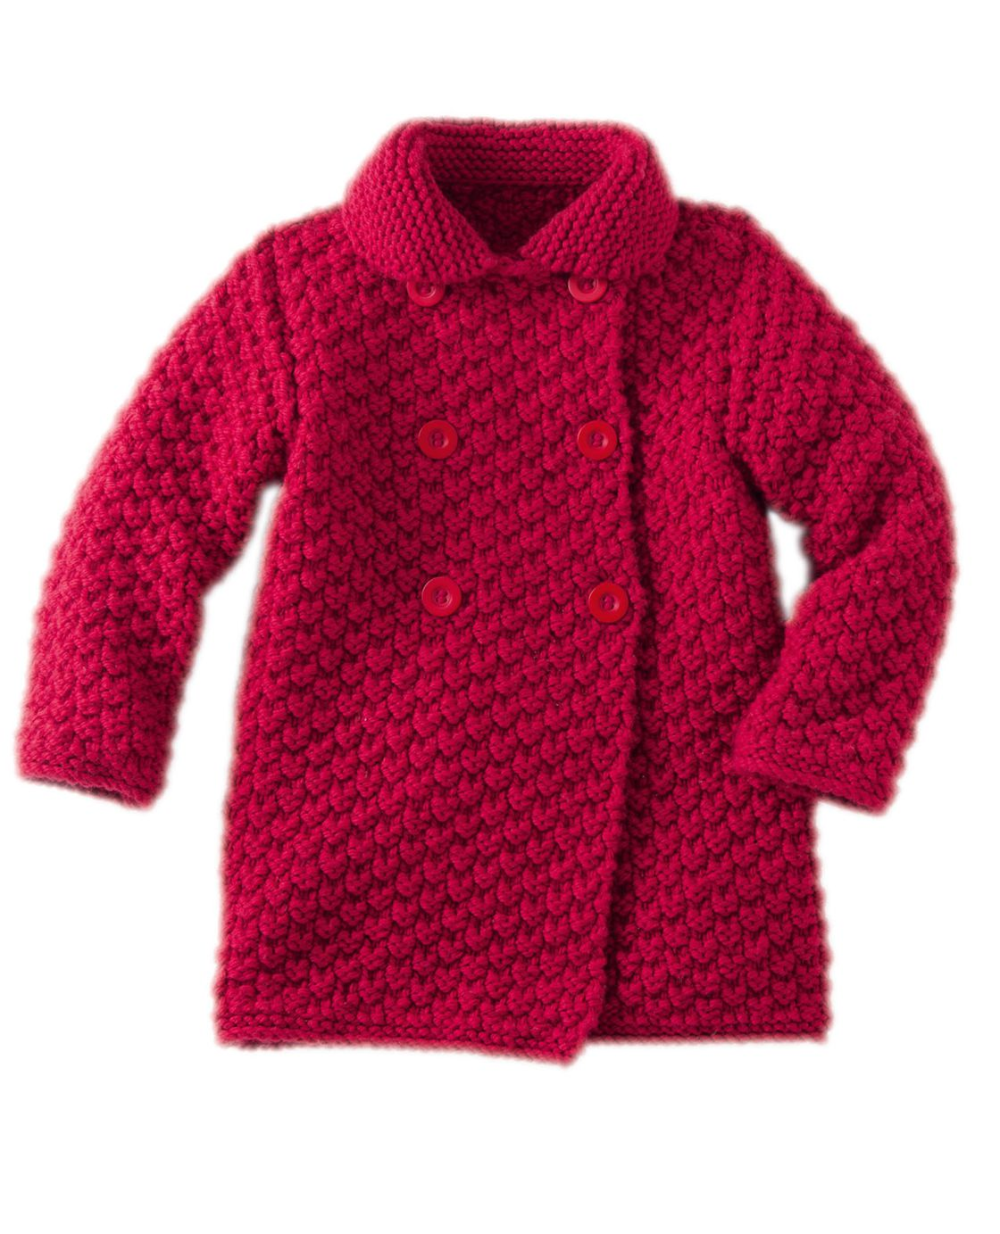 Tricot gratuit : le manteau enfant au point fantaisie